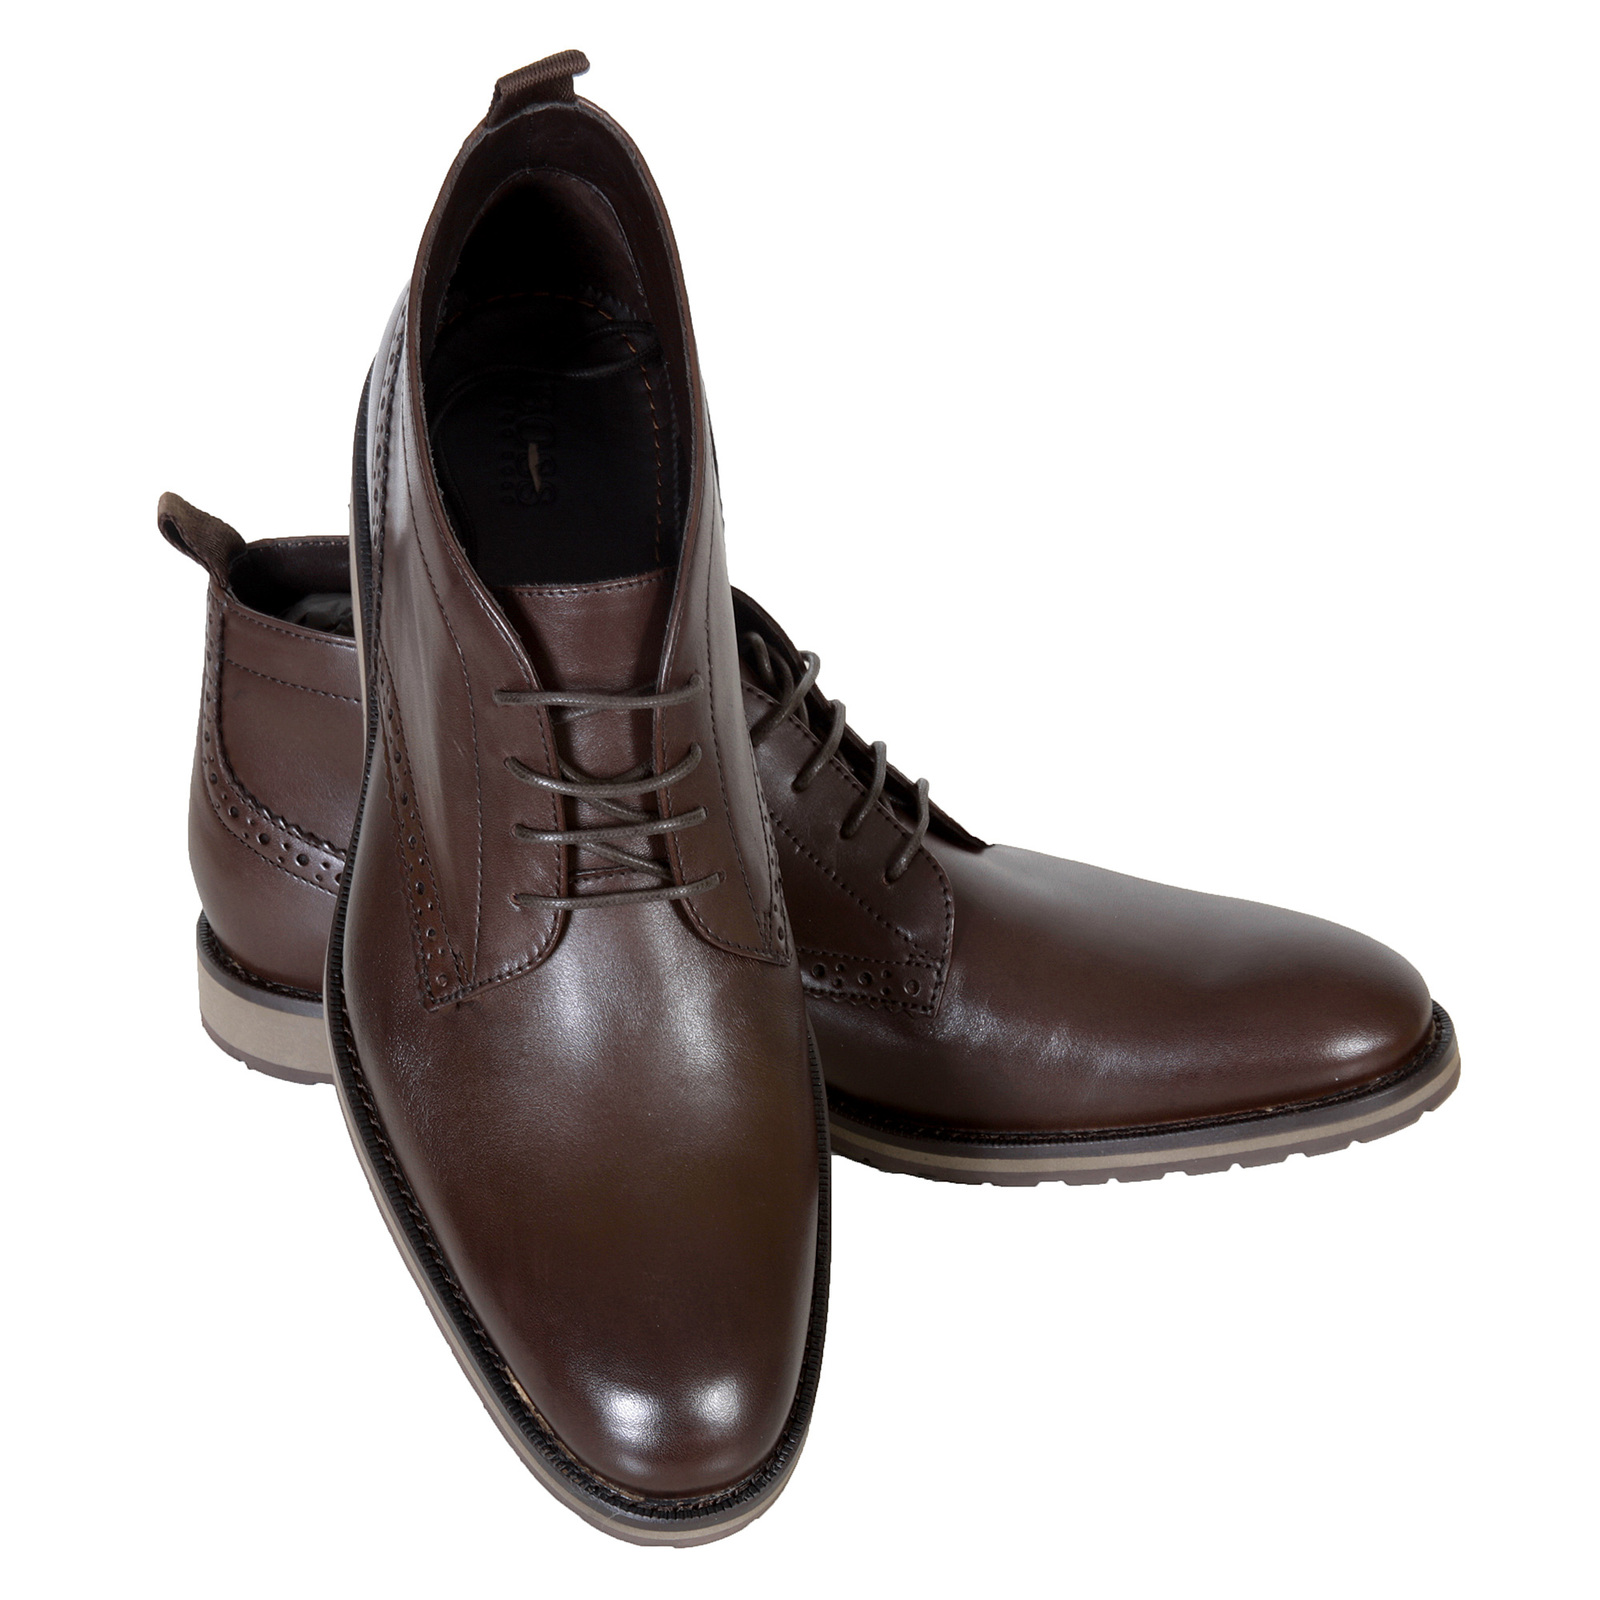 Boss Shoes Price